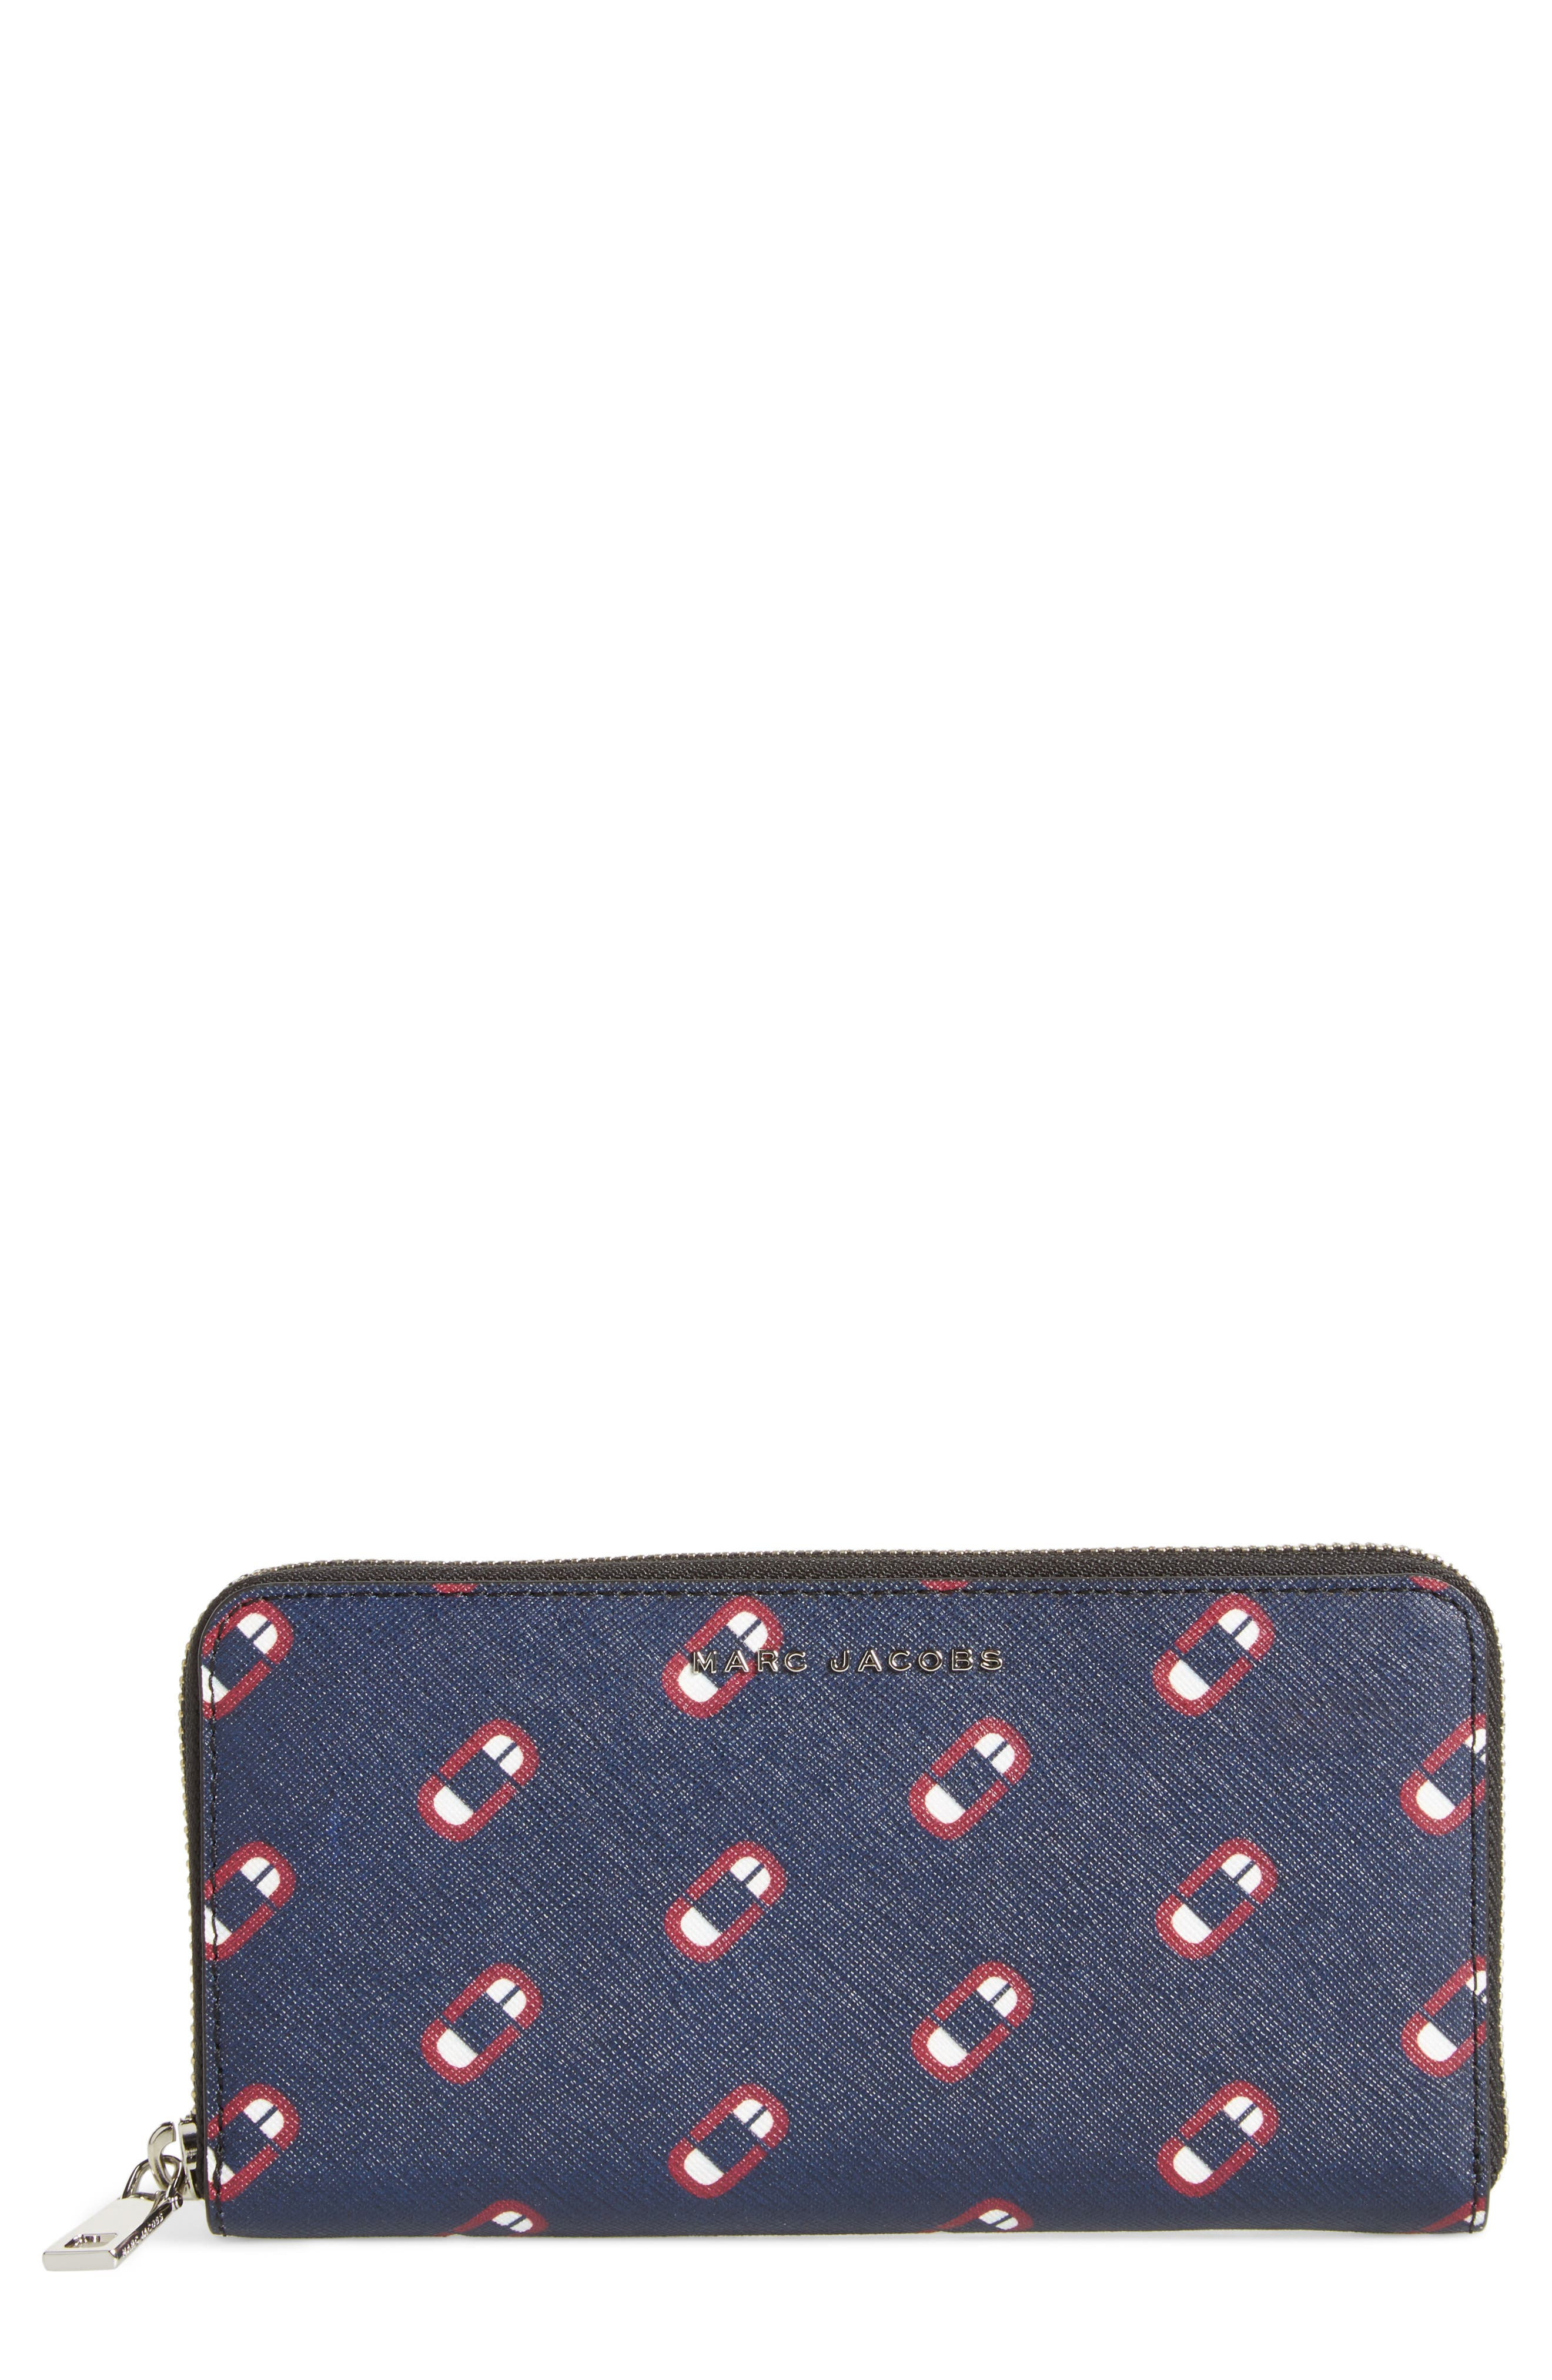 Scream Saffiano Leather Continental Wallet,                             Main thumbnail 1, color,